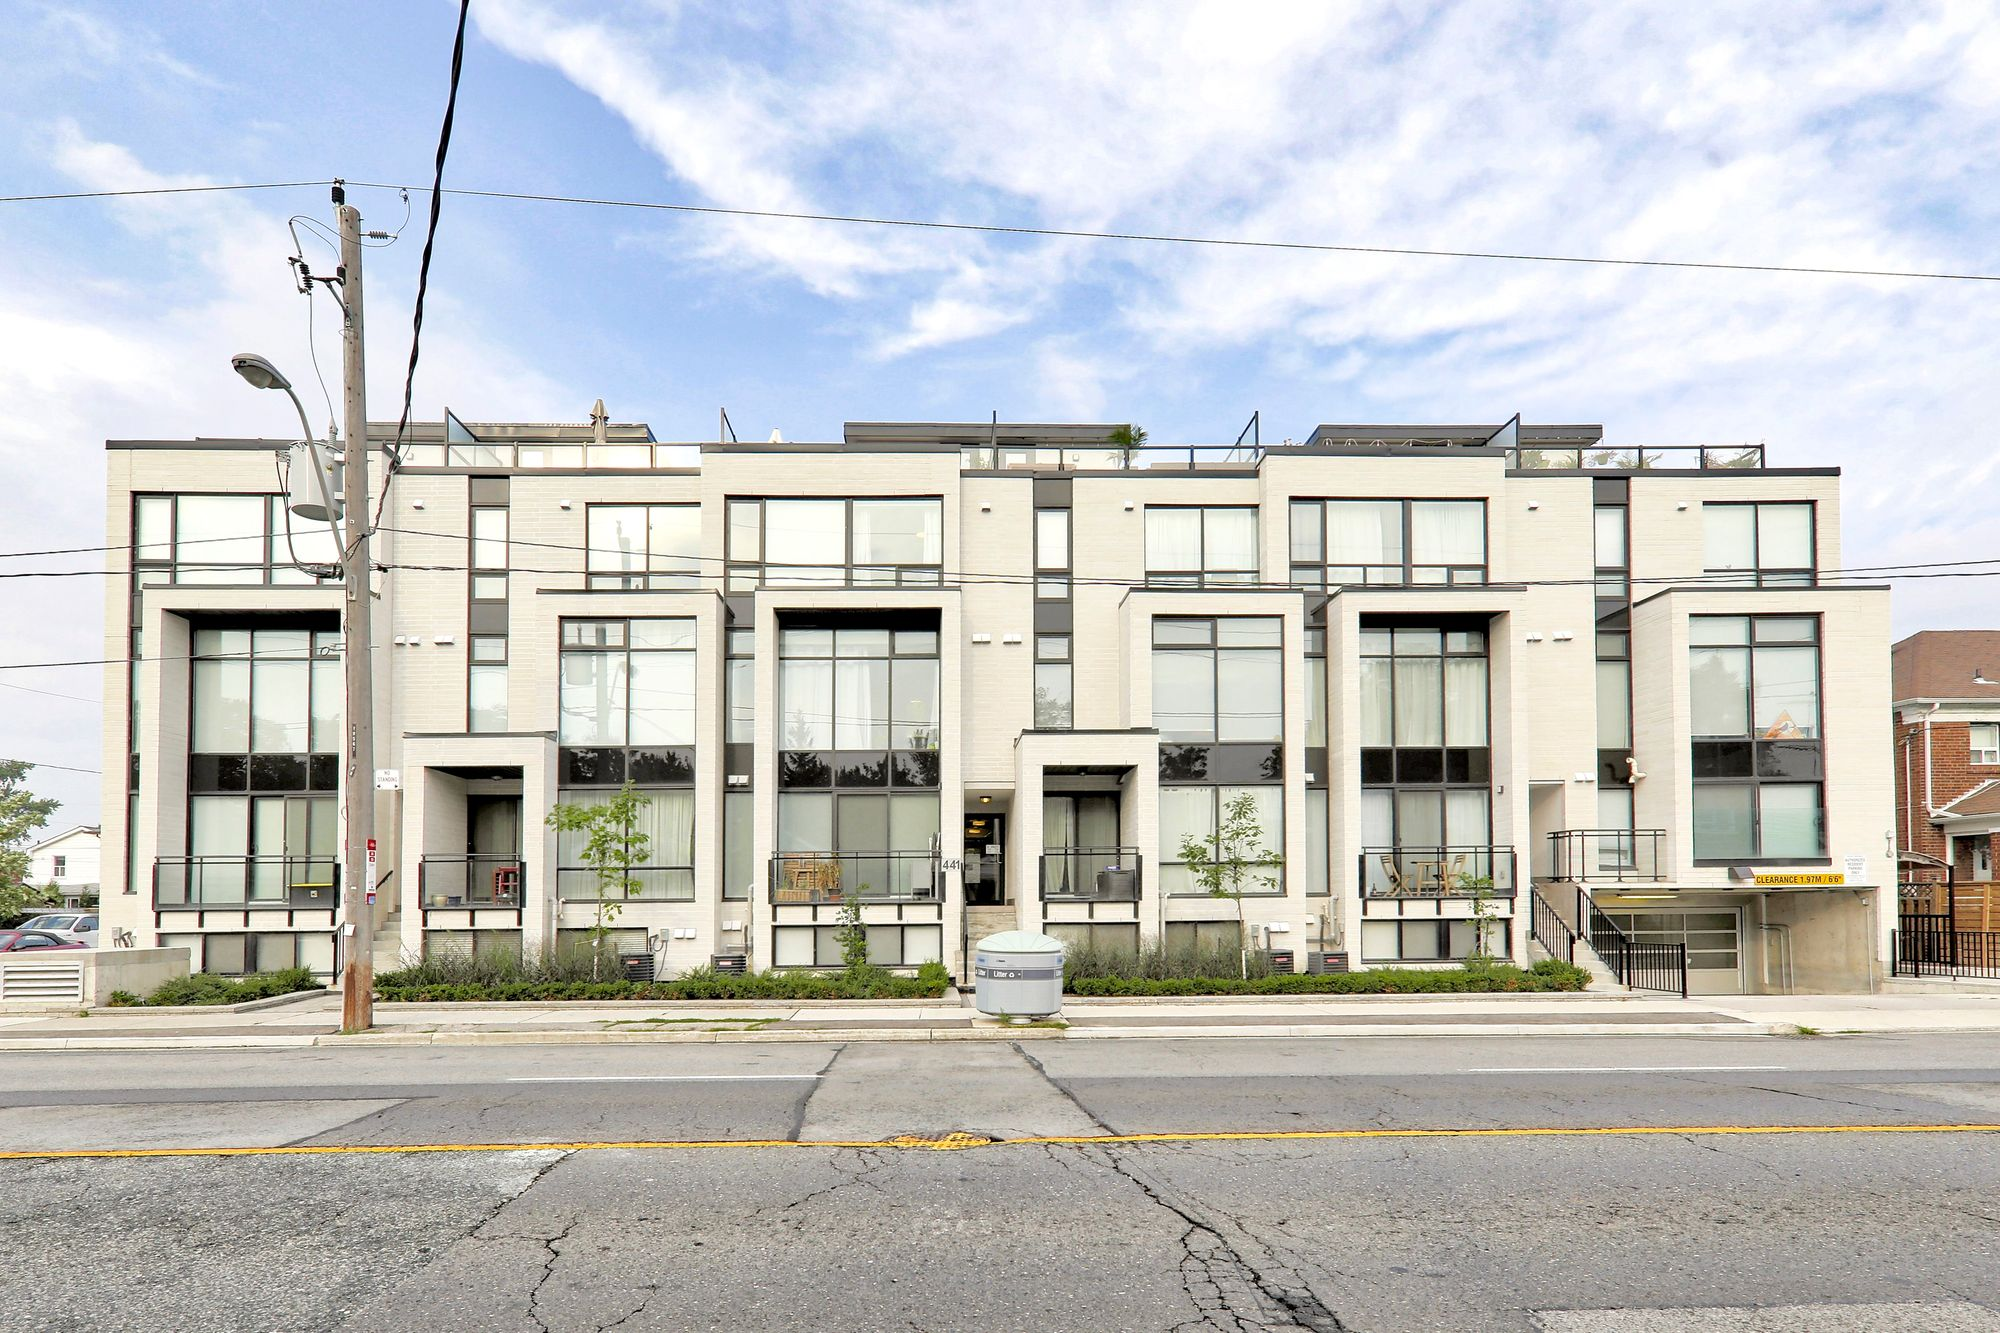 441 Jane St. This condo townhouse at The 23 at Baby Point is located in  West End, Toronto - image #2 of 4 by Strata.ca